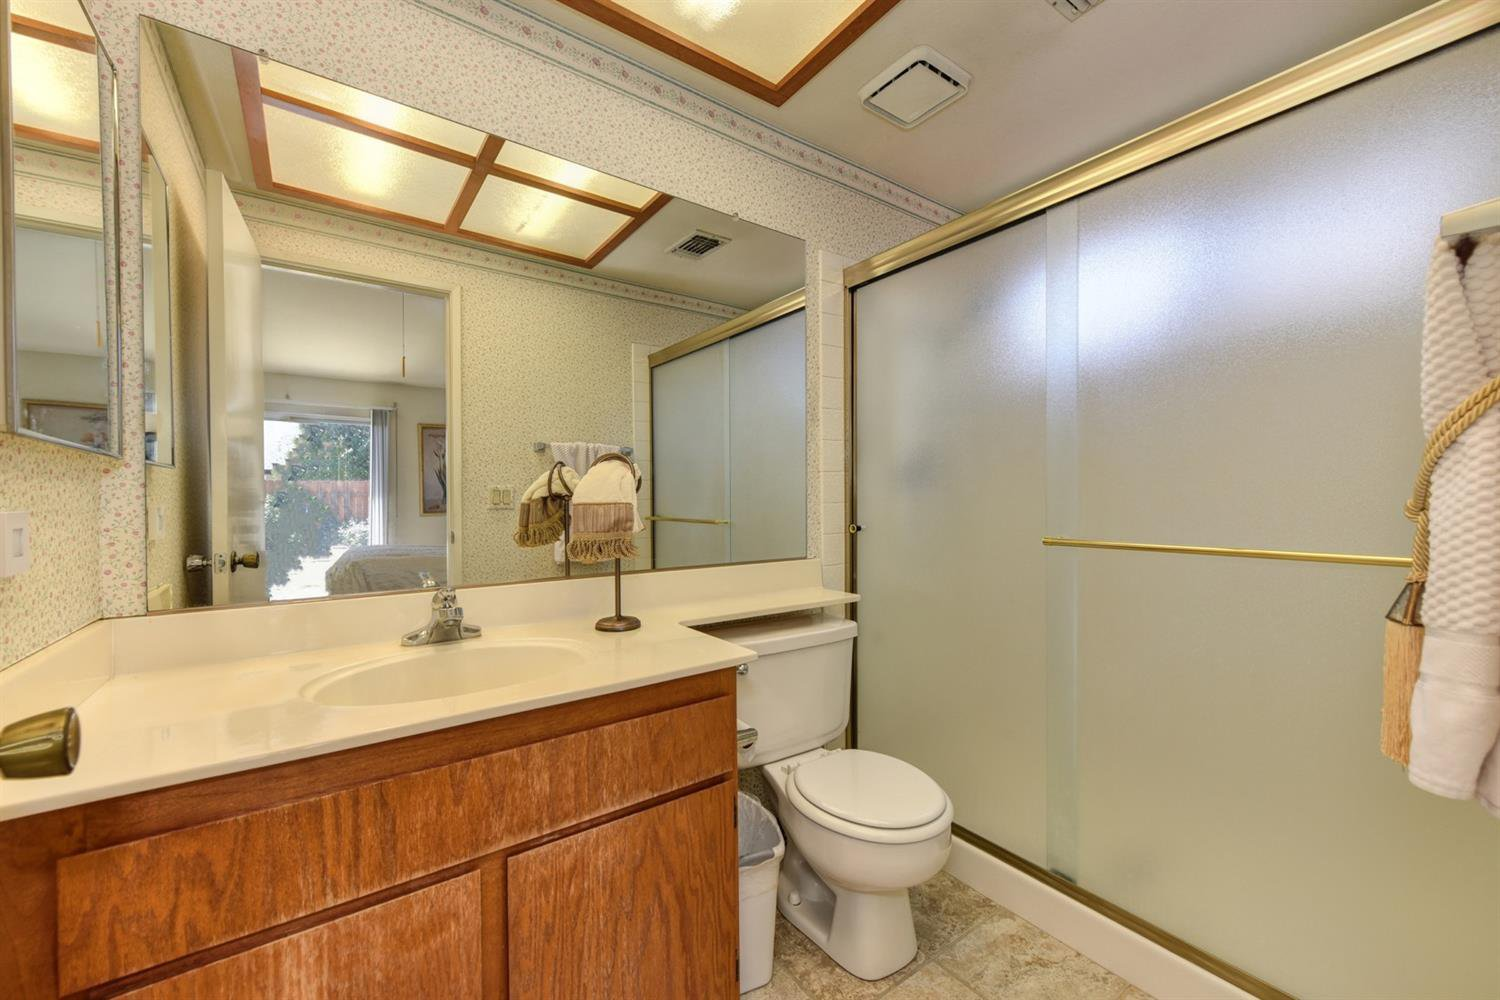 Homes for sale in Citrus Heights California. Citrus Heights California Realtor.